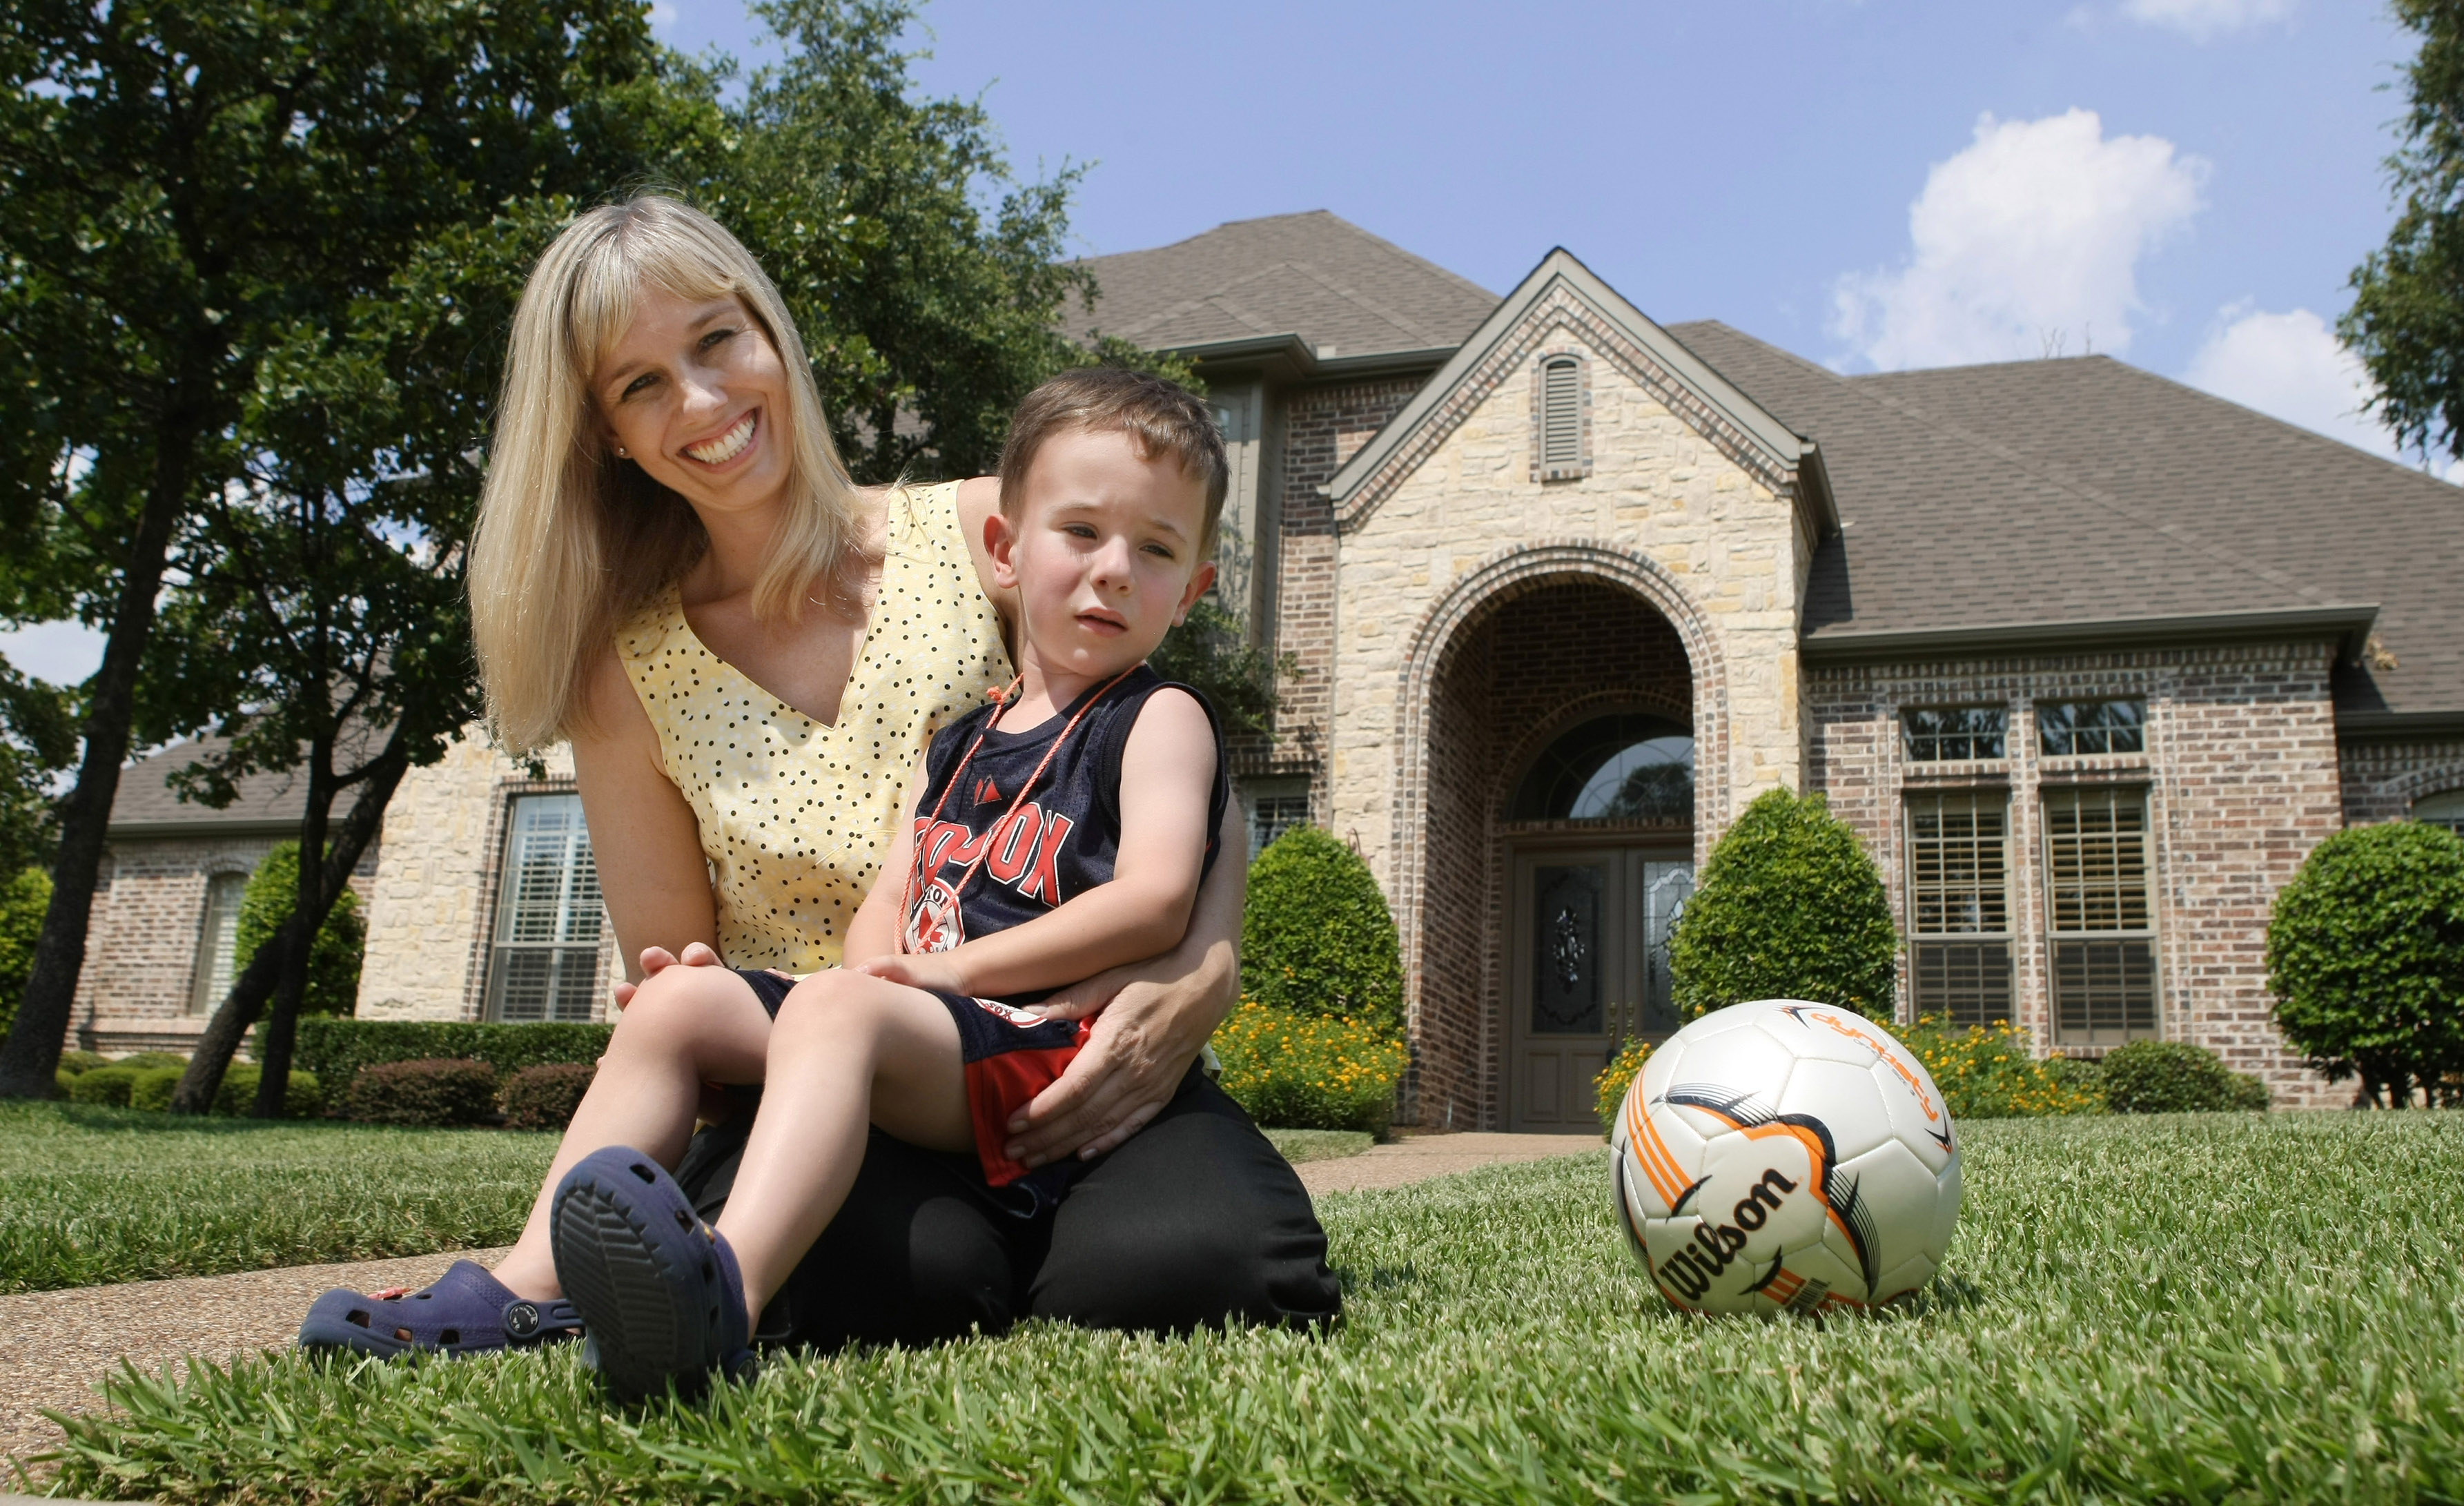 Kelly McGuire Lynch poses at her soon-to-be ex-home in Southlake, Texas, with her son Patrick, June 24, 2009.